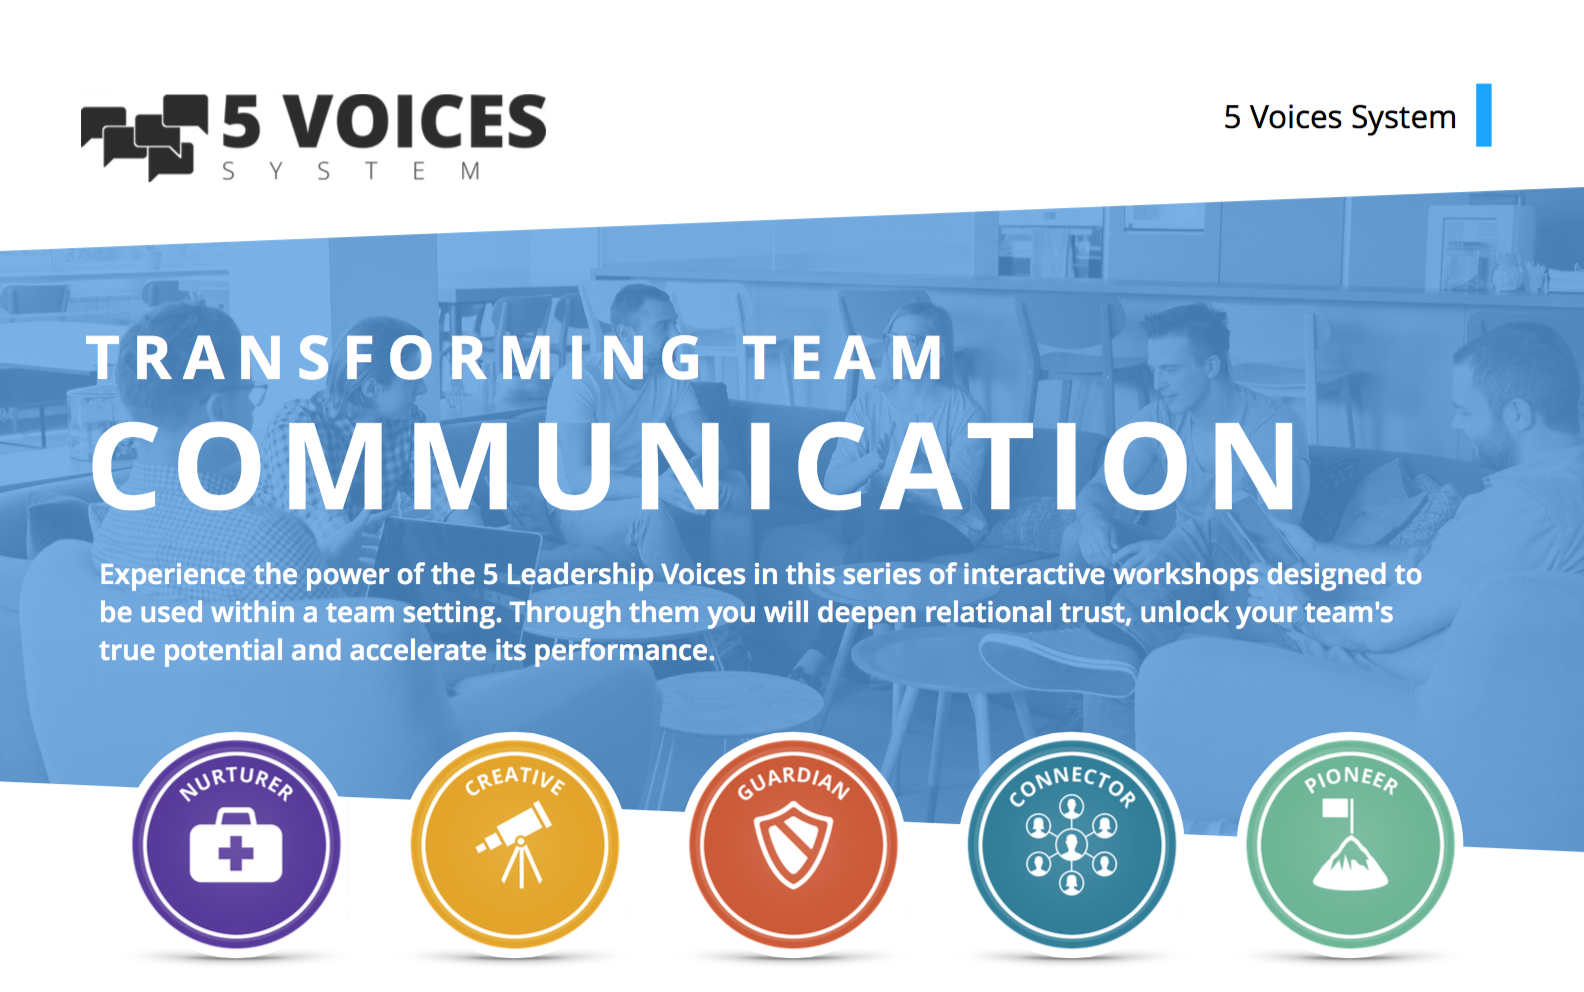 - 5 Voices Workshops for leaders. One of many speaking topics available. Session 1: Discover your leadership voiceSession 2: The Power of your voiceSessions 3: The art of collaborationSession 4: Optimizing Team performanceSession 5: Team kryptonite